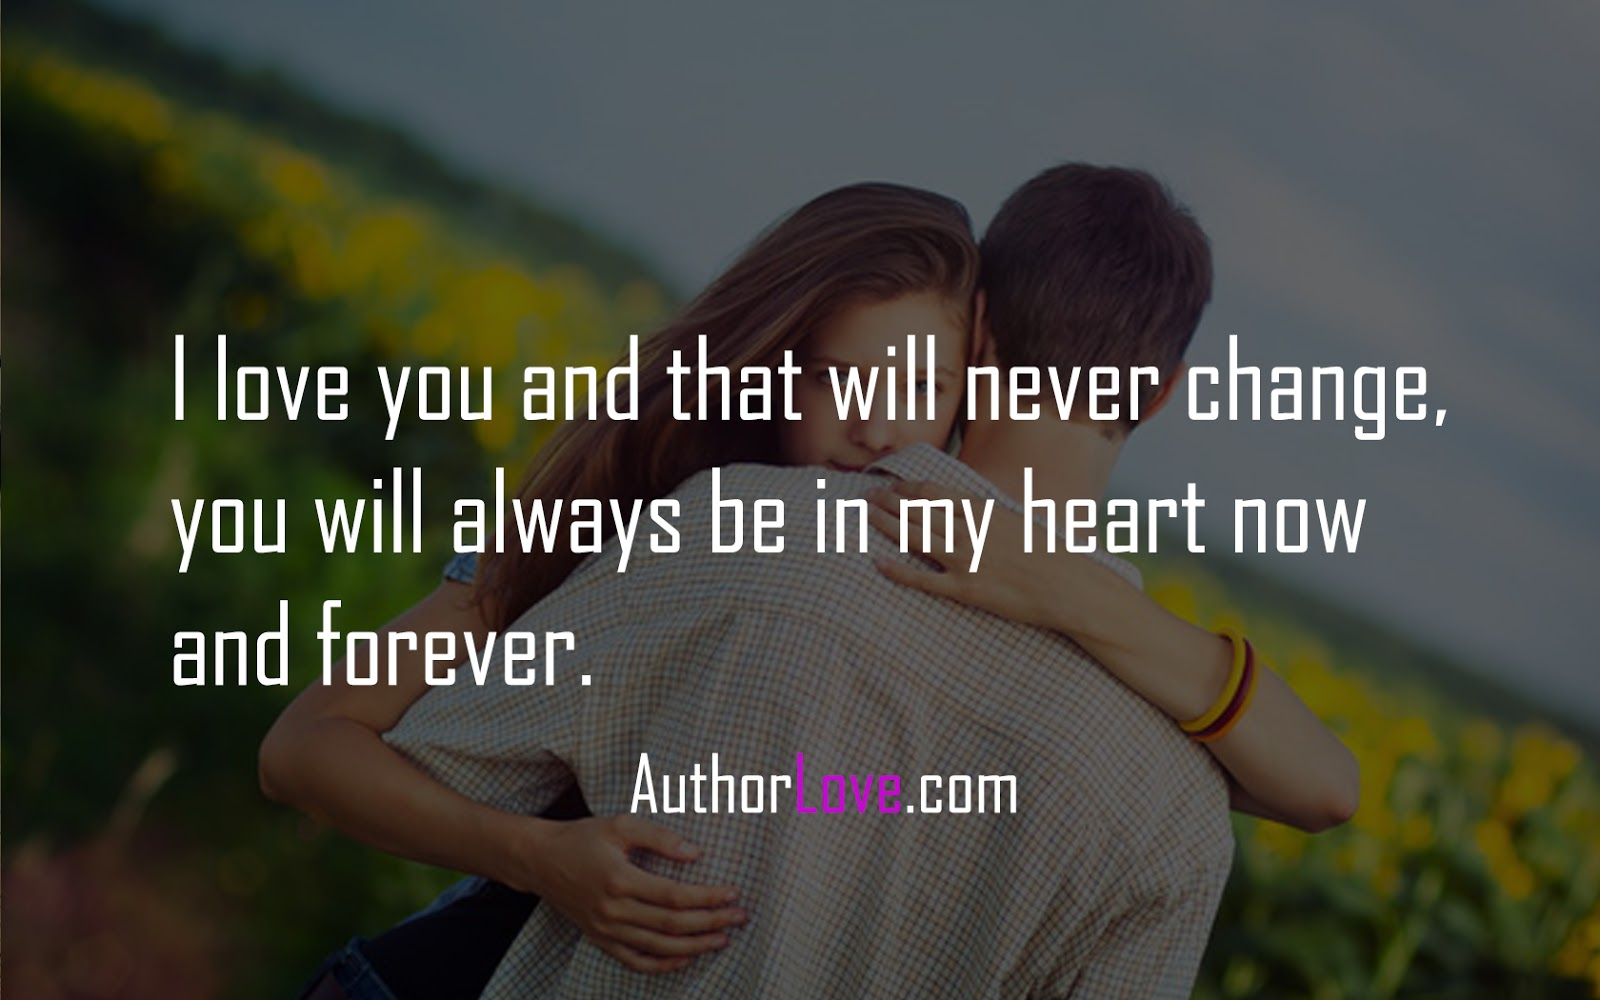 I Love You Quotes For Her I Love You And That Will Never Change  Love Quotes  Author Love